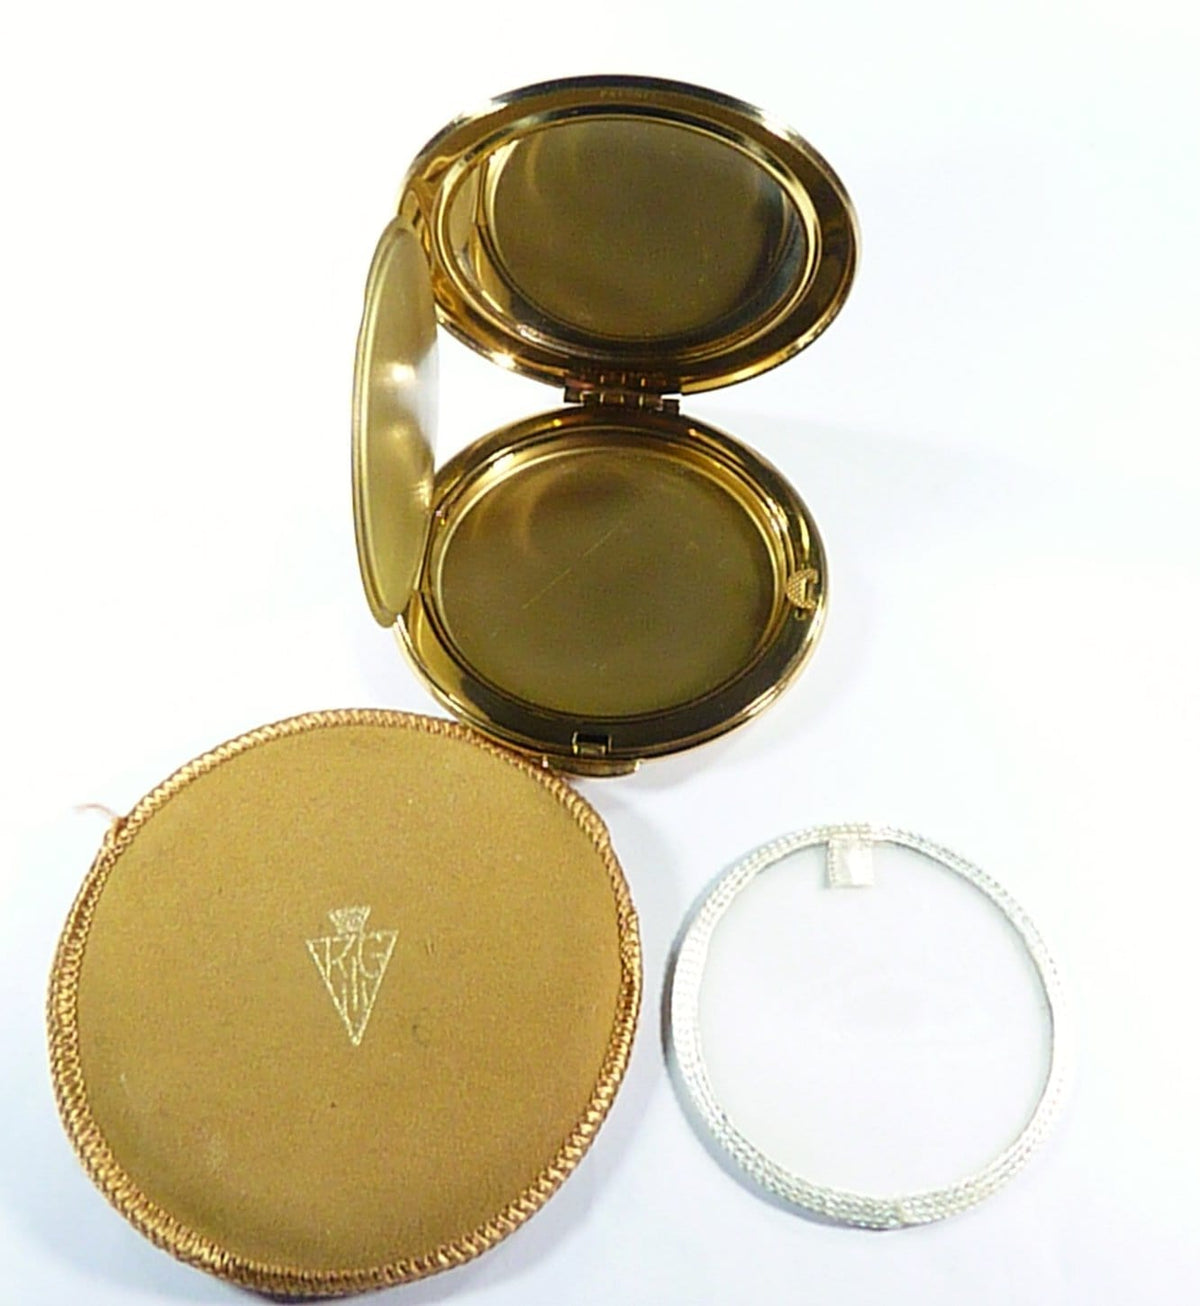 Unused Refillable Loose Powder Compact Case 1960s Kigu